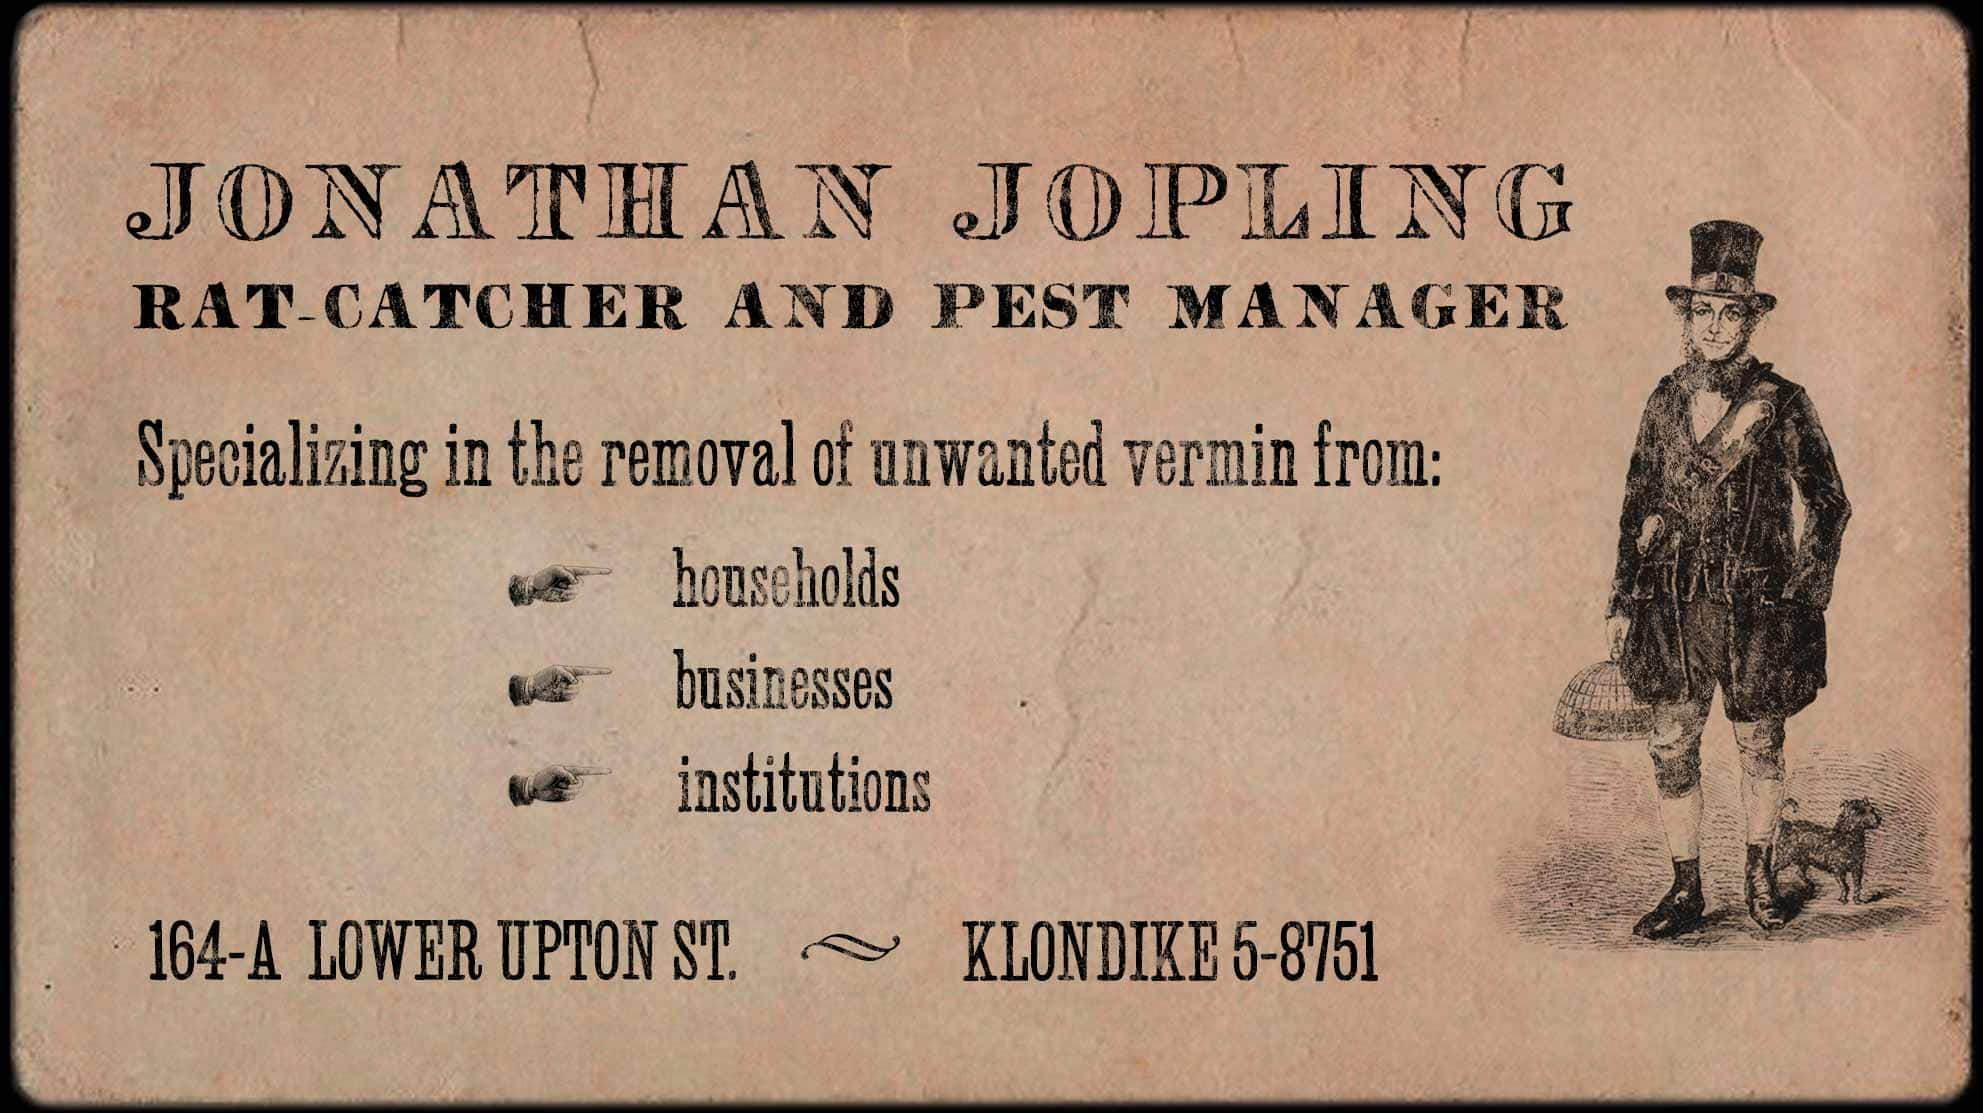 A business card for Jonathan Jopling: Rat-Catcher and Pest Manager.